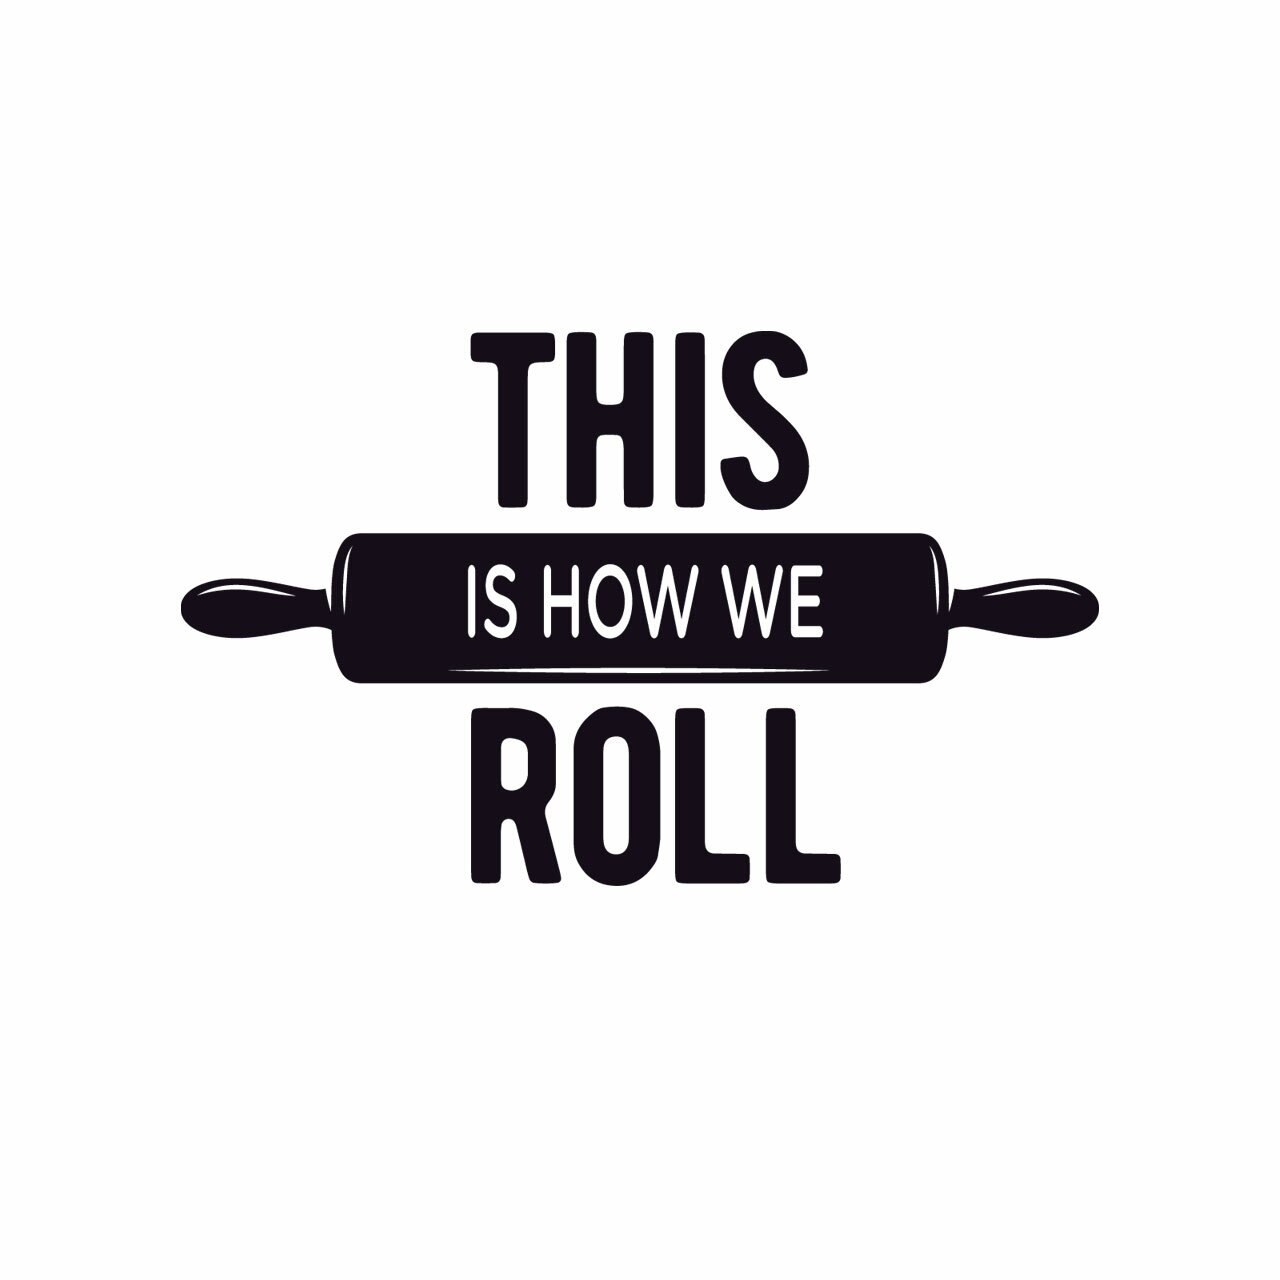 """""""This is how we roll"""" written on 3 lines with a rolling pin on the middle line in black on a white background"""